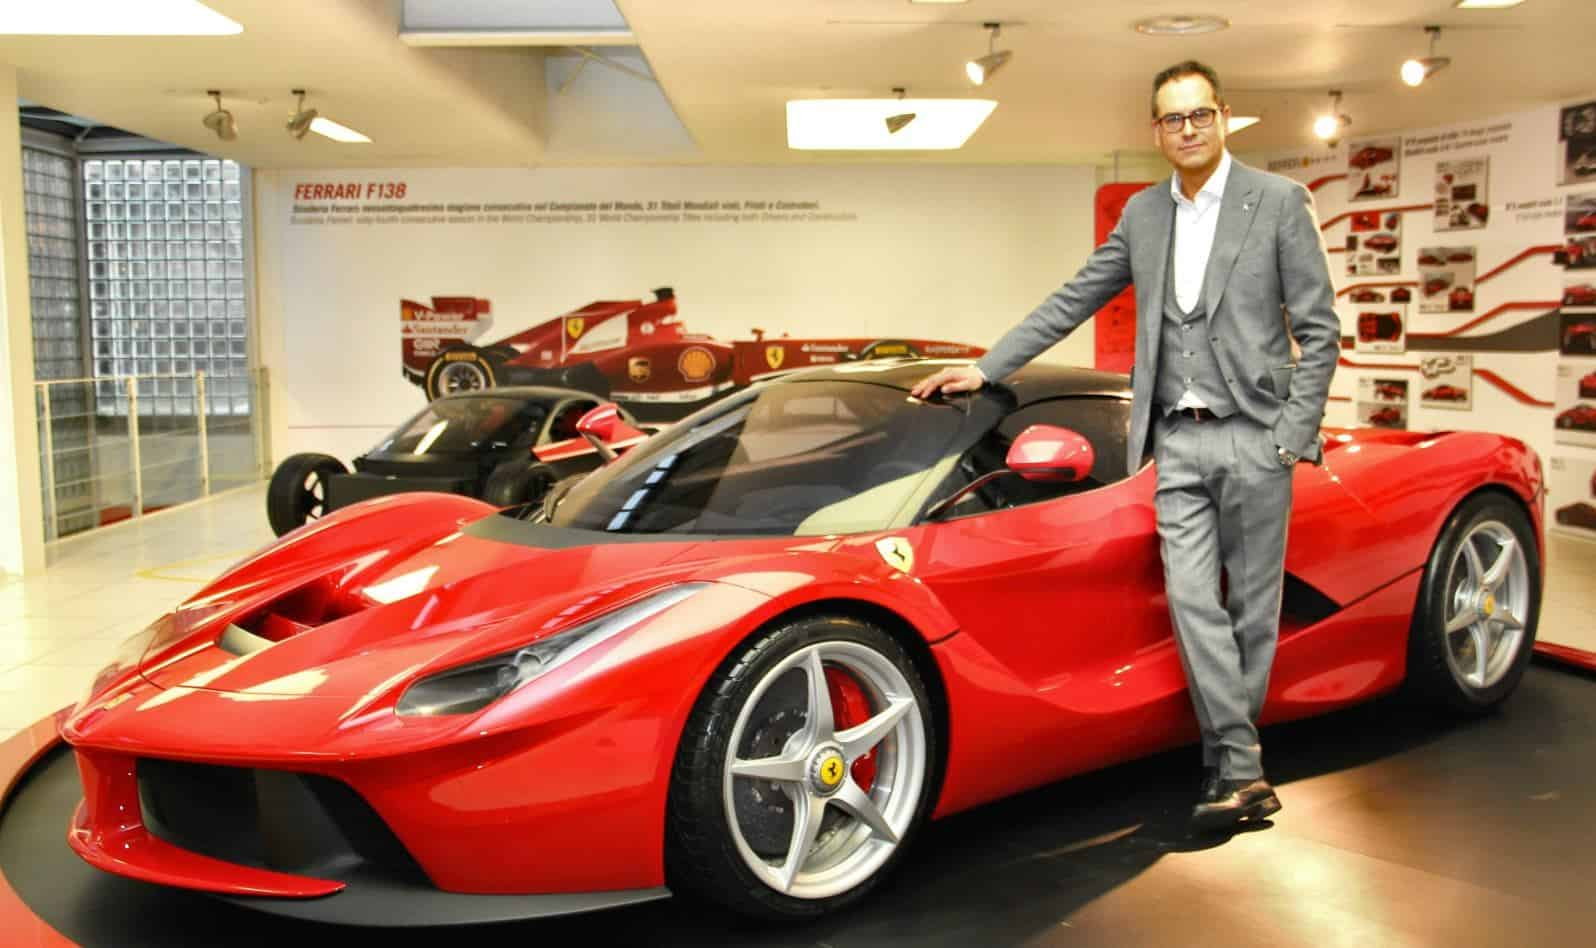 Ferrari S Flavio Manzoni On The Design Of Laferrari